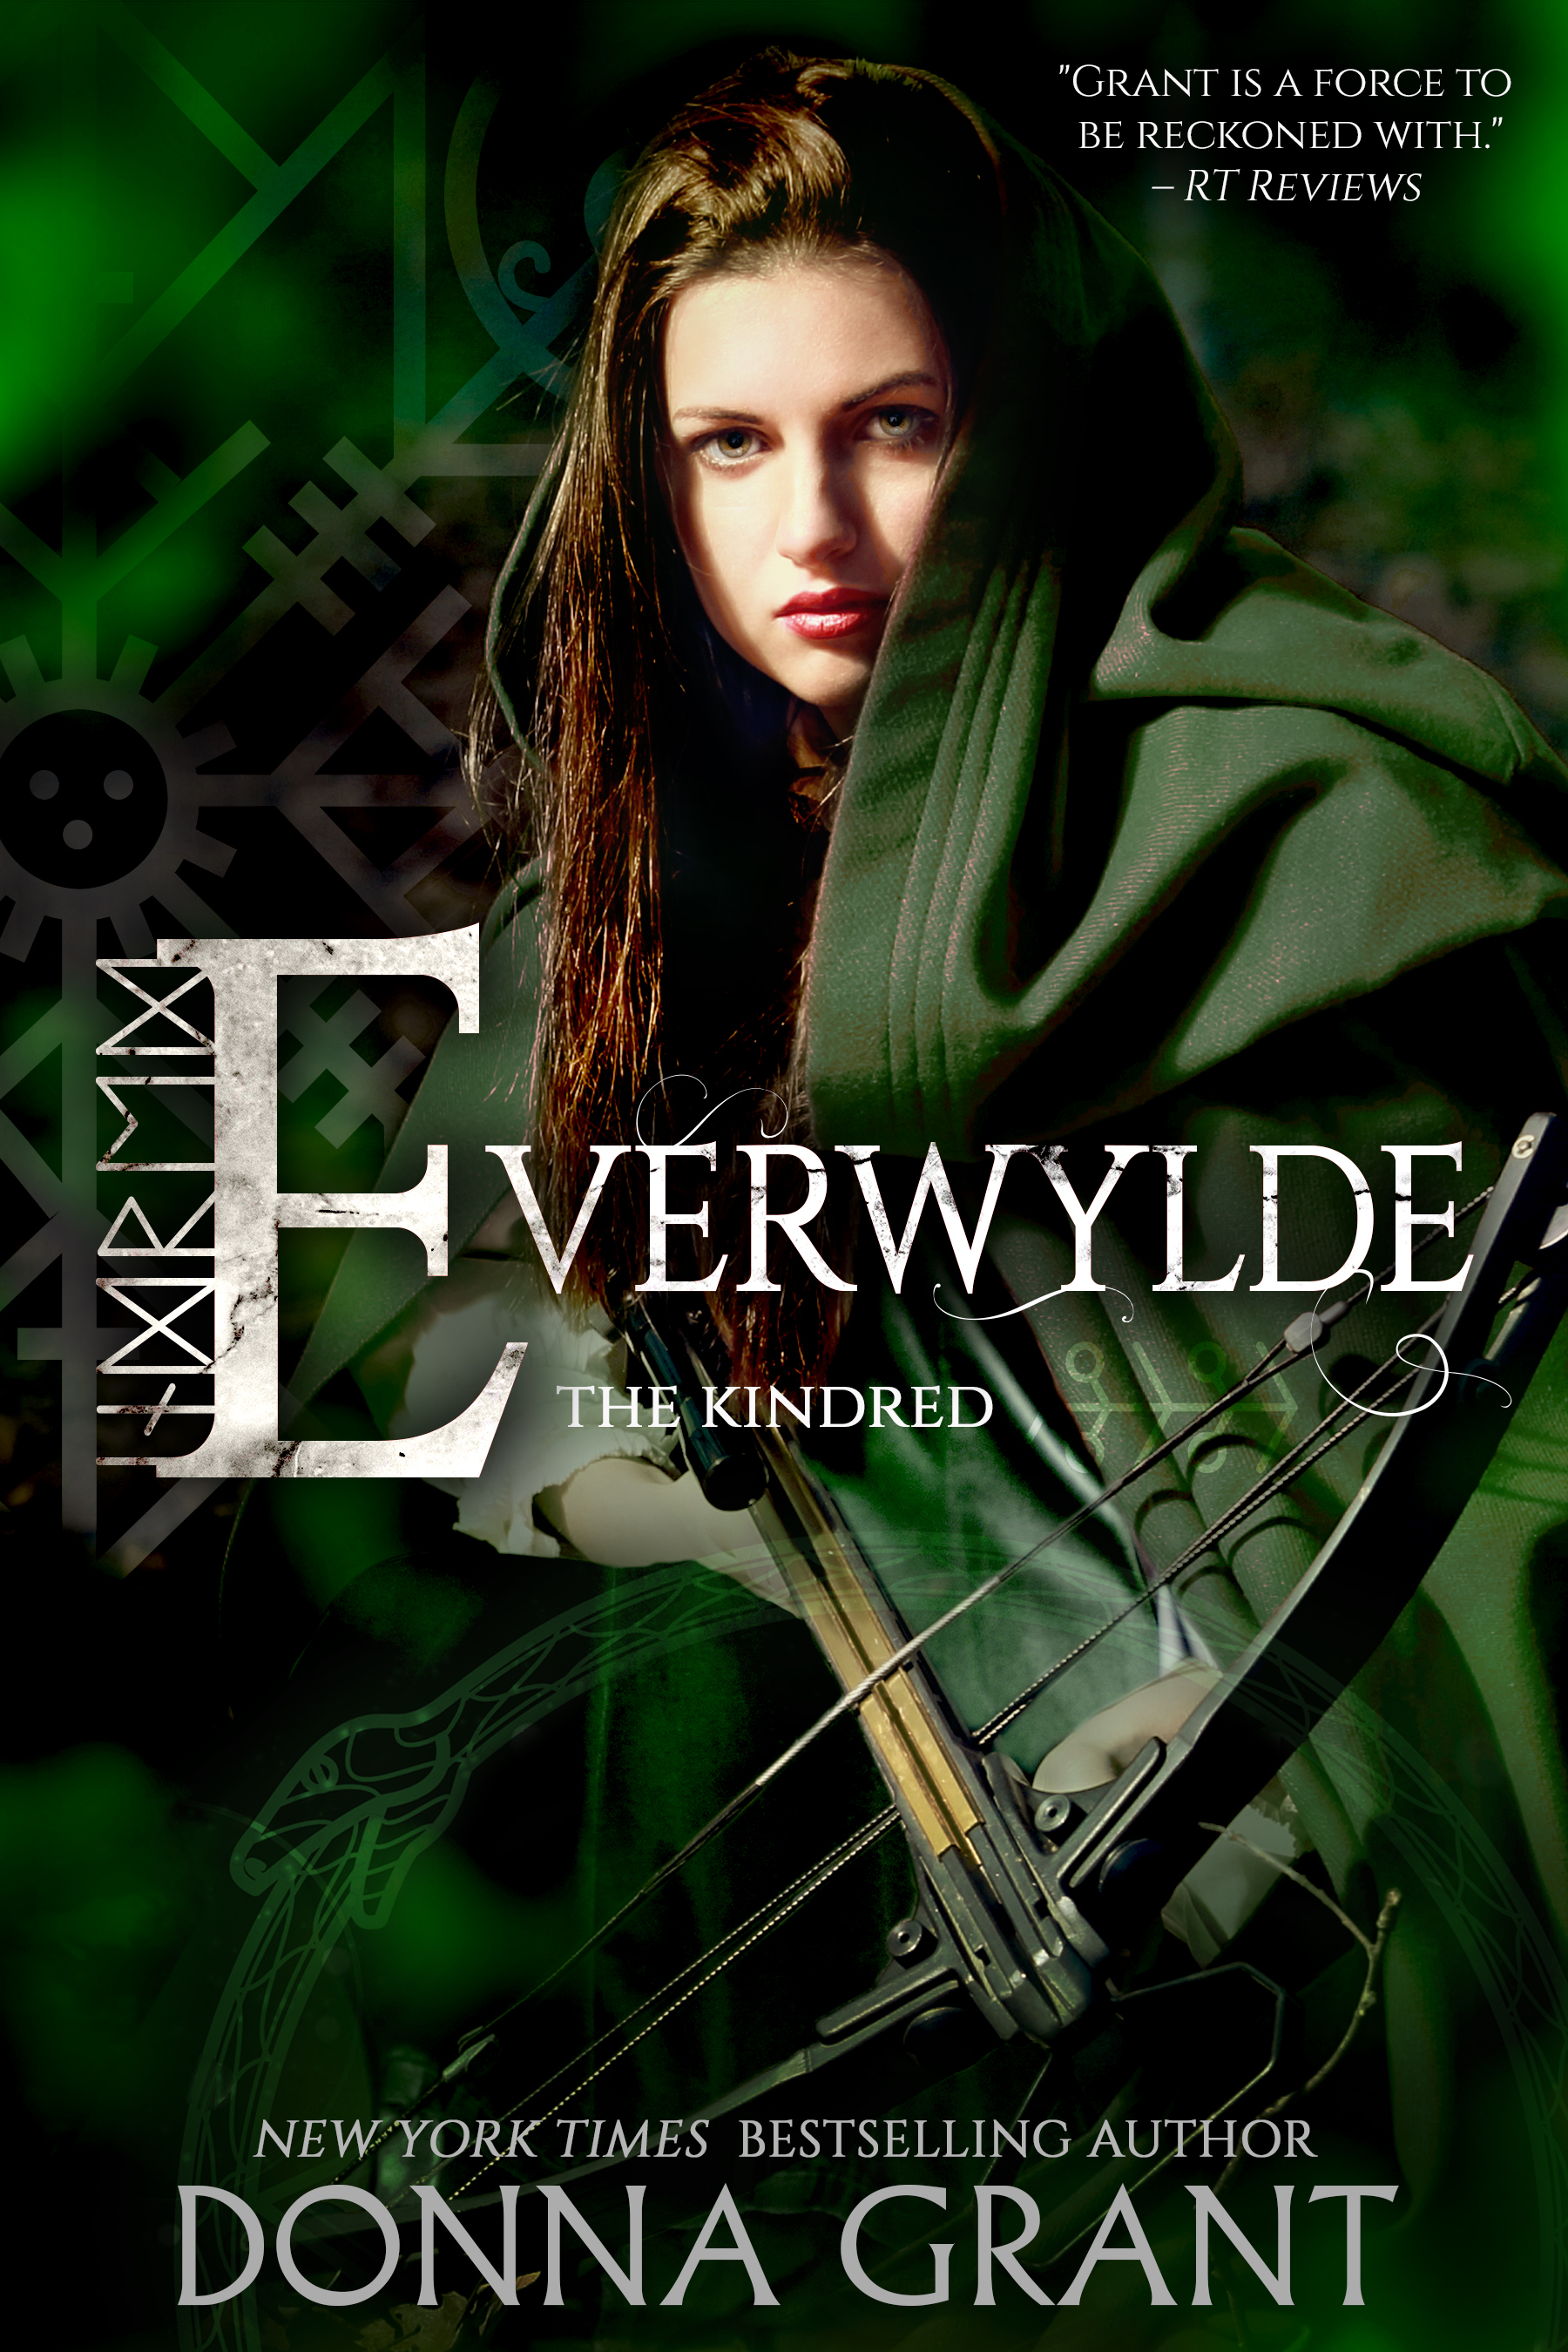 Everwylde Cover2 v300dpi.jpg